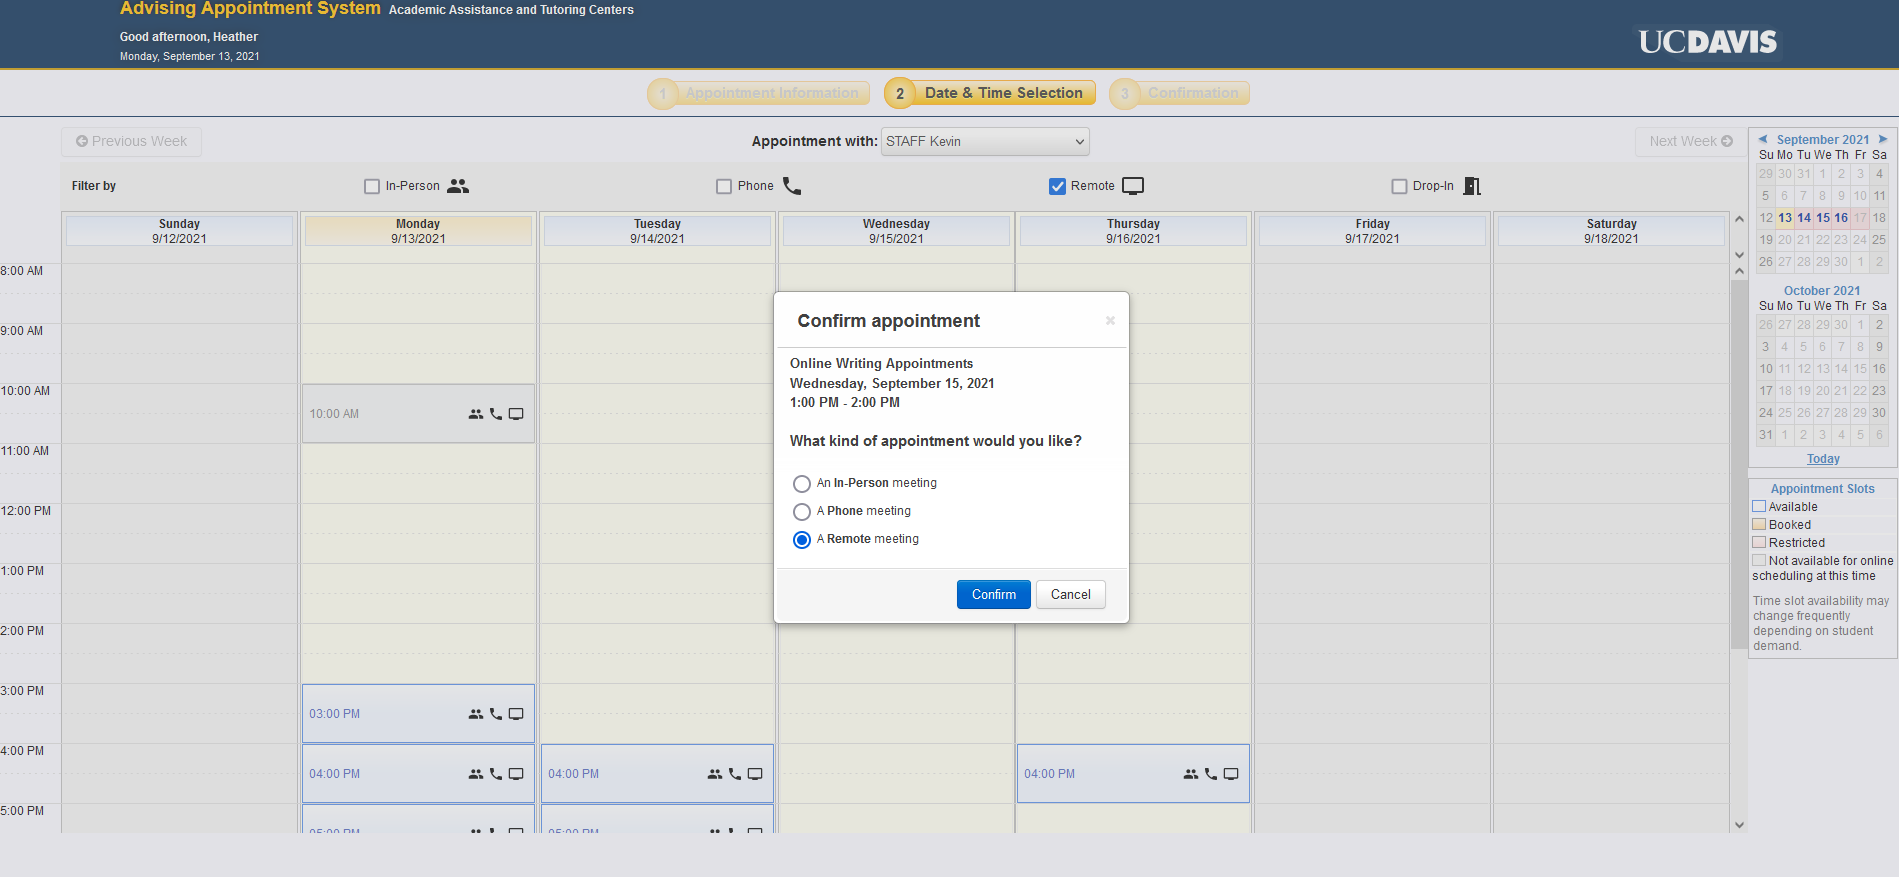 Example of Appointment System calendar booking